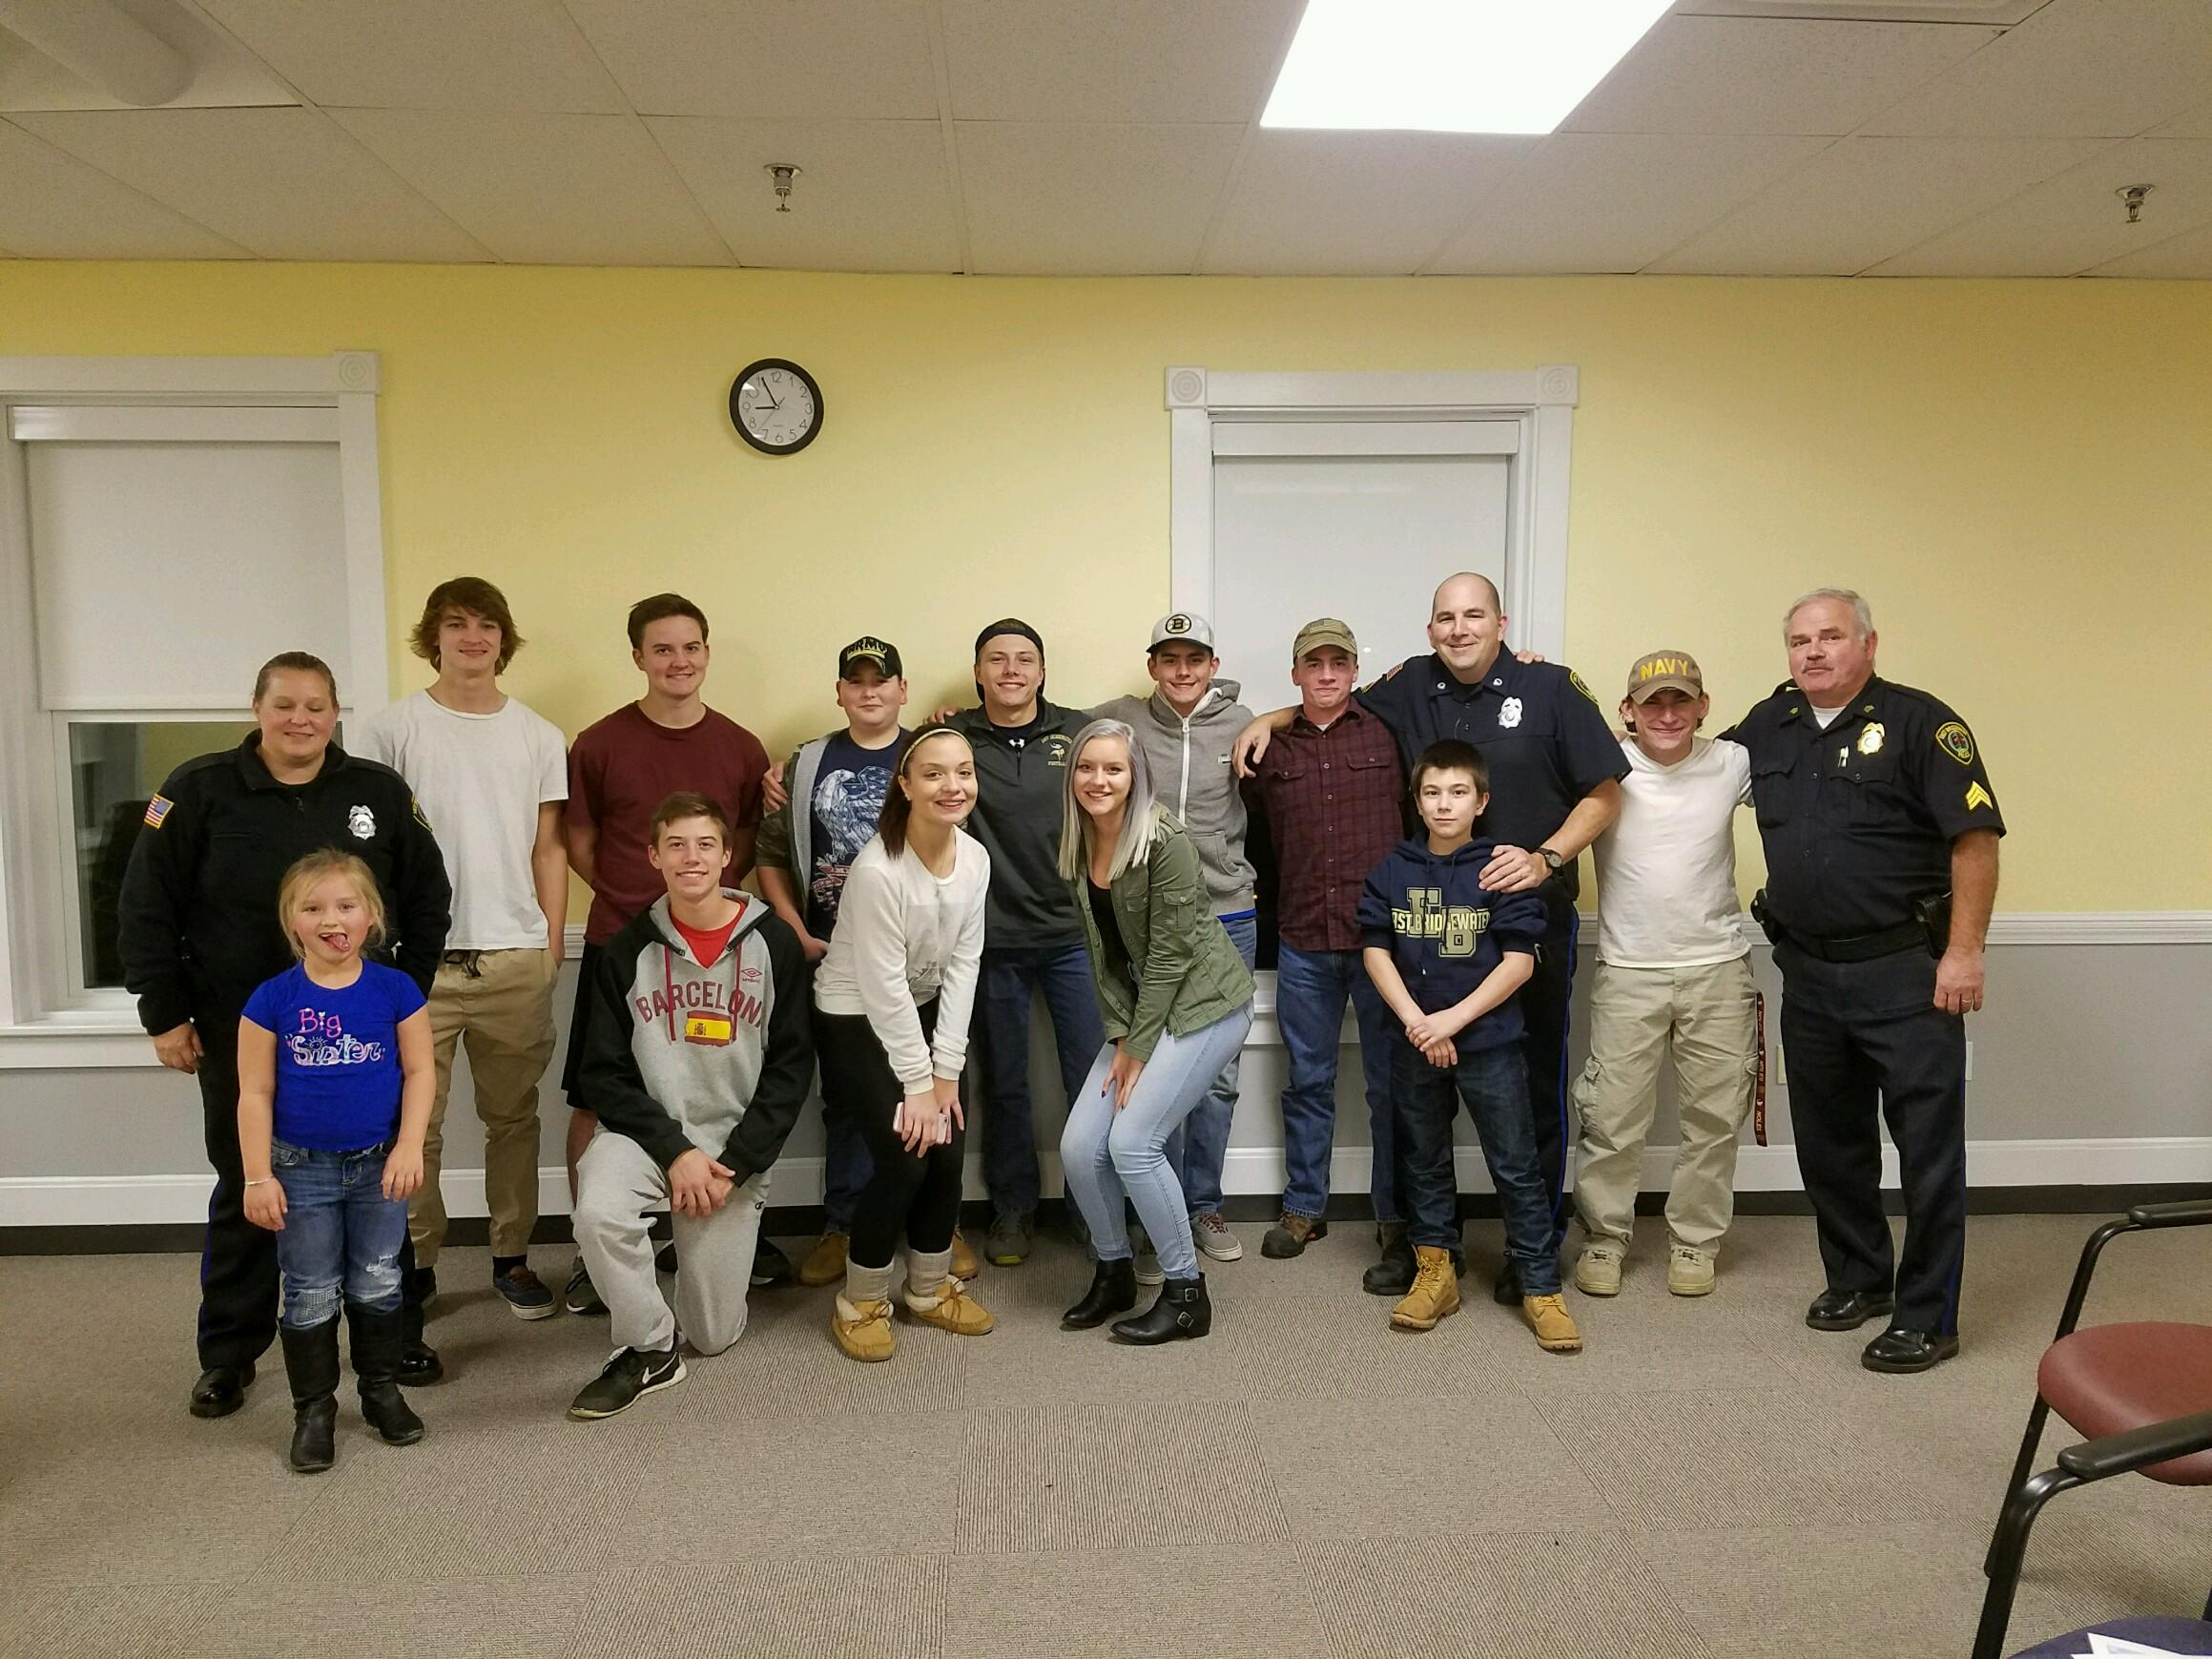 east bridgewater Latest local news for east bridgewater, ma : east bridgewater, massachusetts is located in plymouth countyzip codes in east bridgewater, ma include 02333, and 02337.